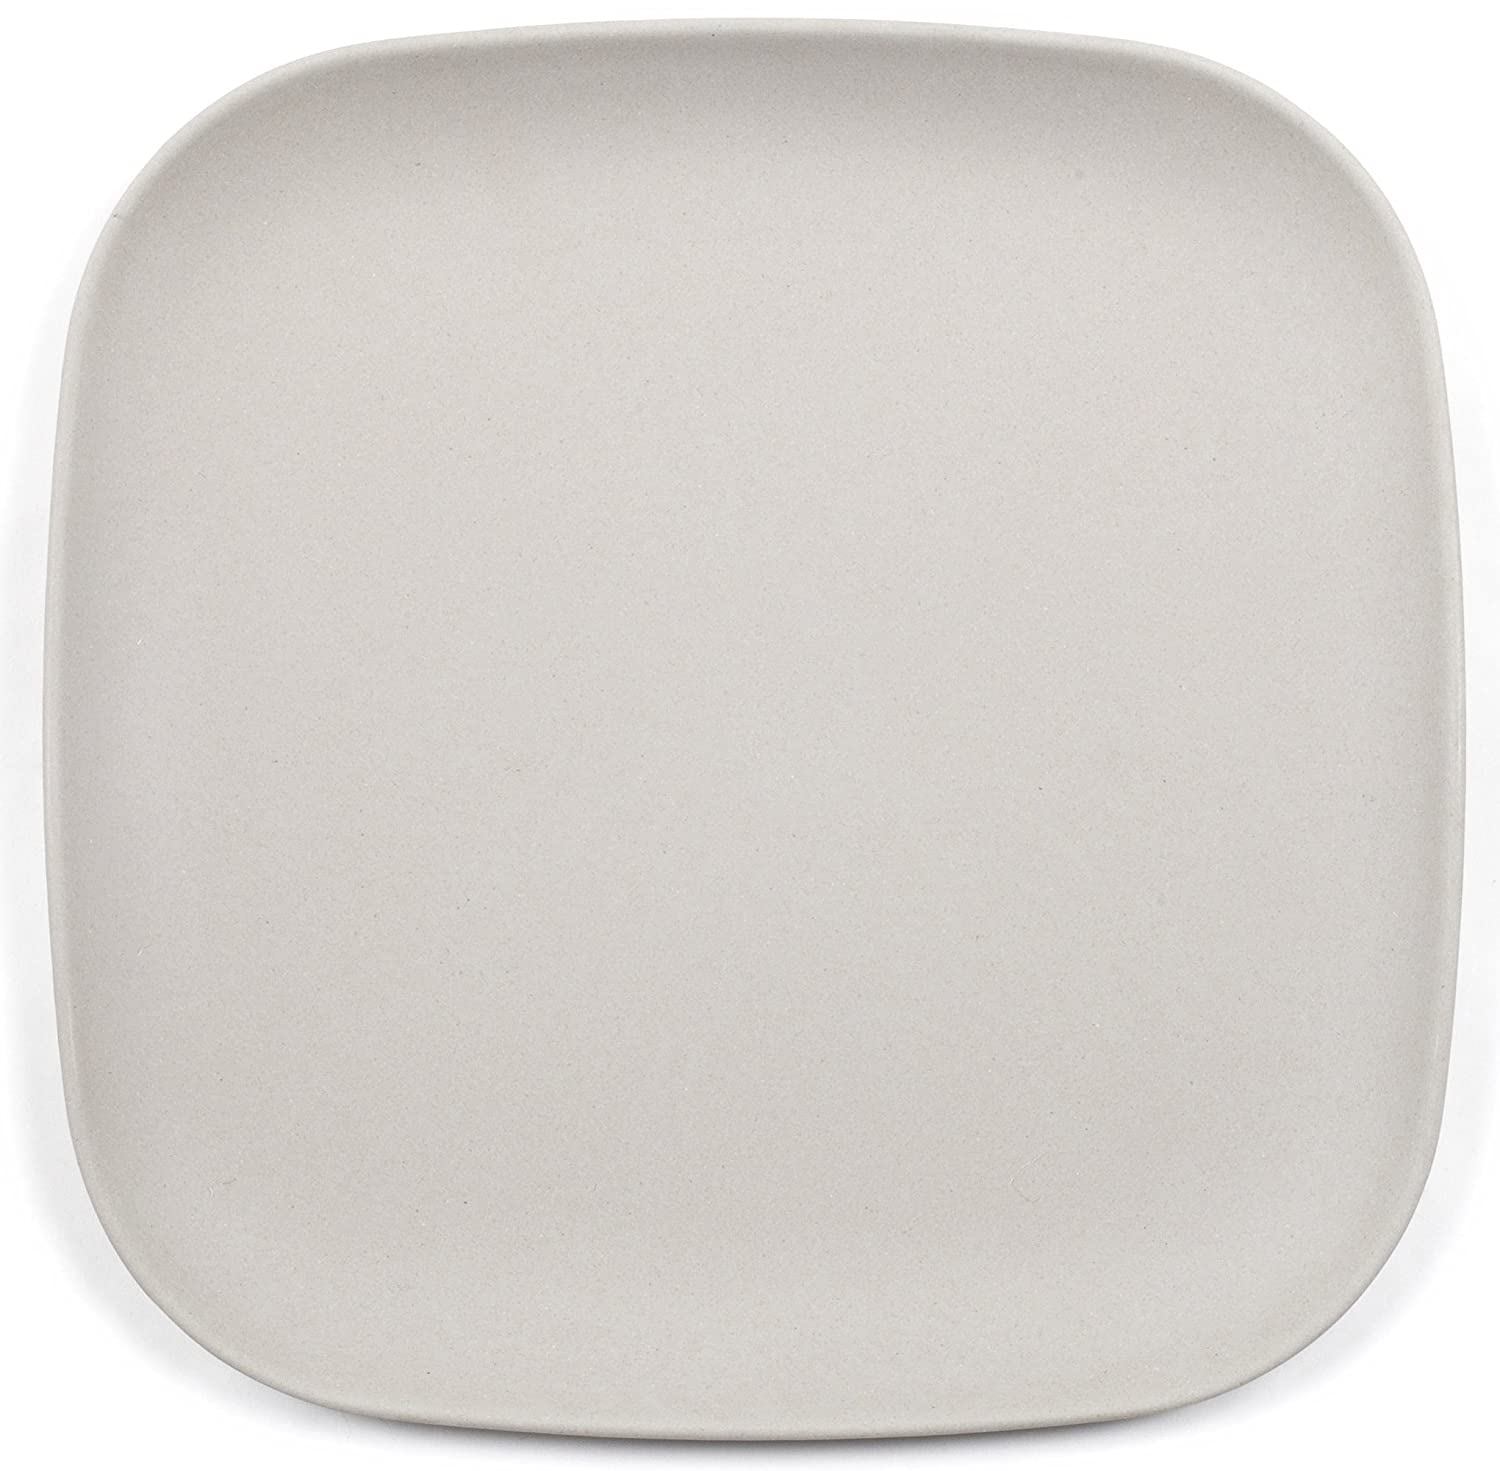 Bamboozle 7.5-inch Salad Plates, Light Grey, Set of 4 by Bamboozle SR21224G